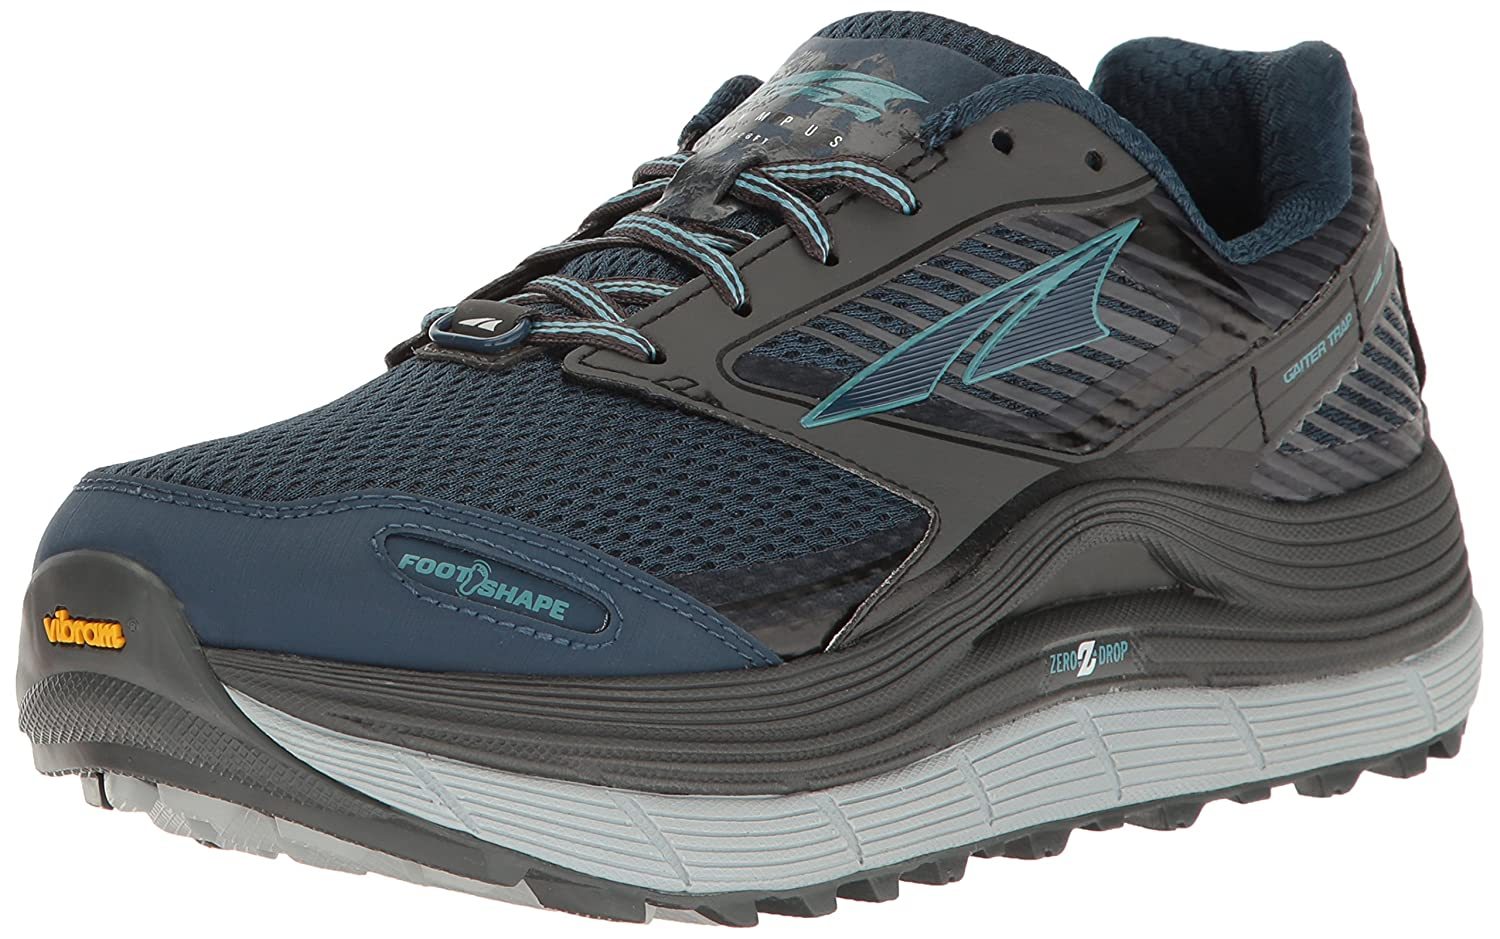 Altra Women's Olympus 2.5 Trail Running Shoe B01N7KOTX1 10 B(M) US|Gray/Blue